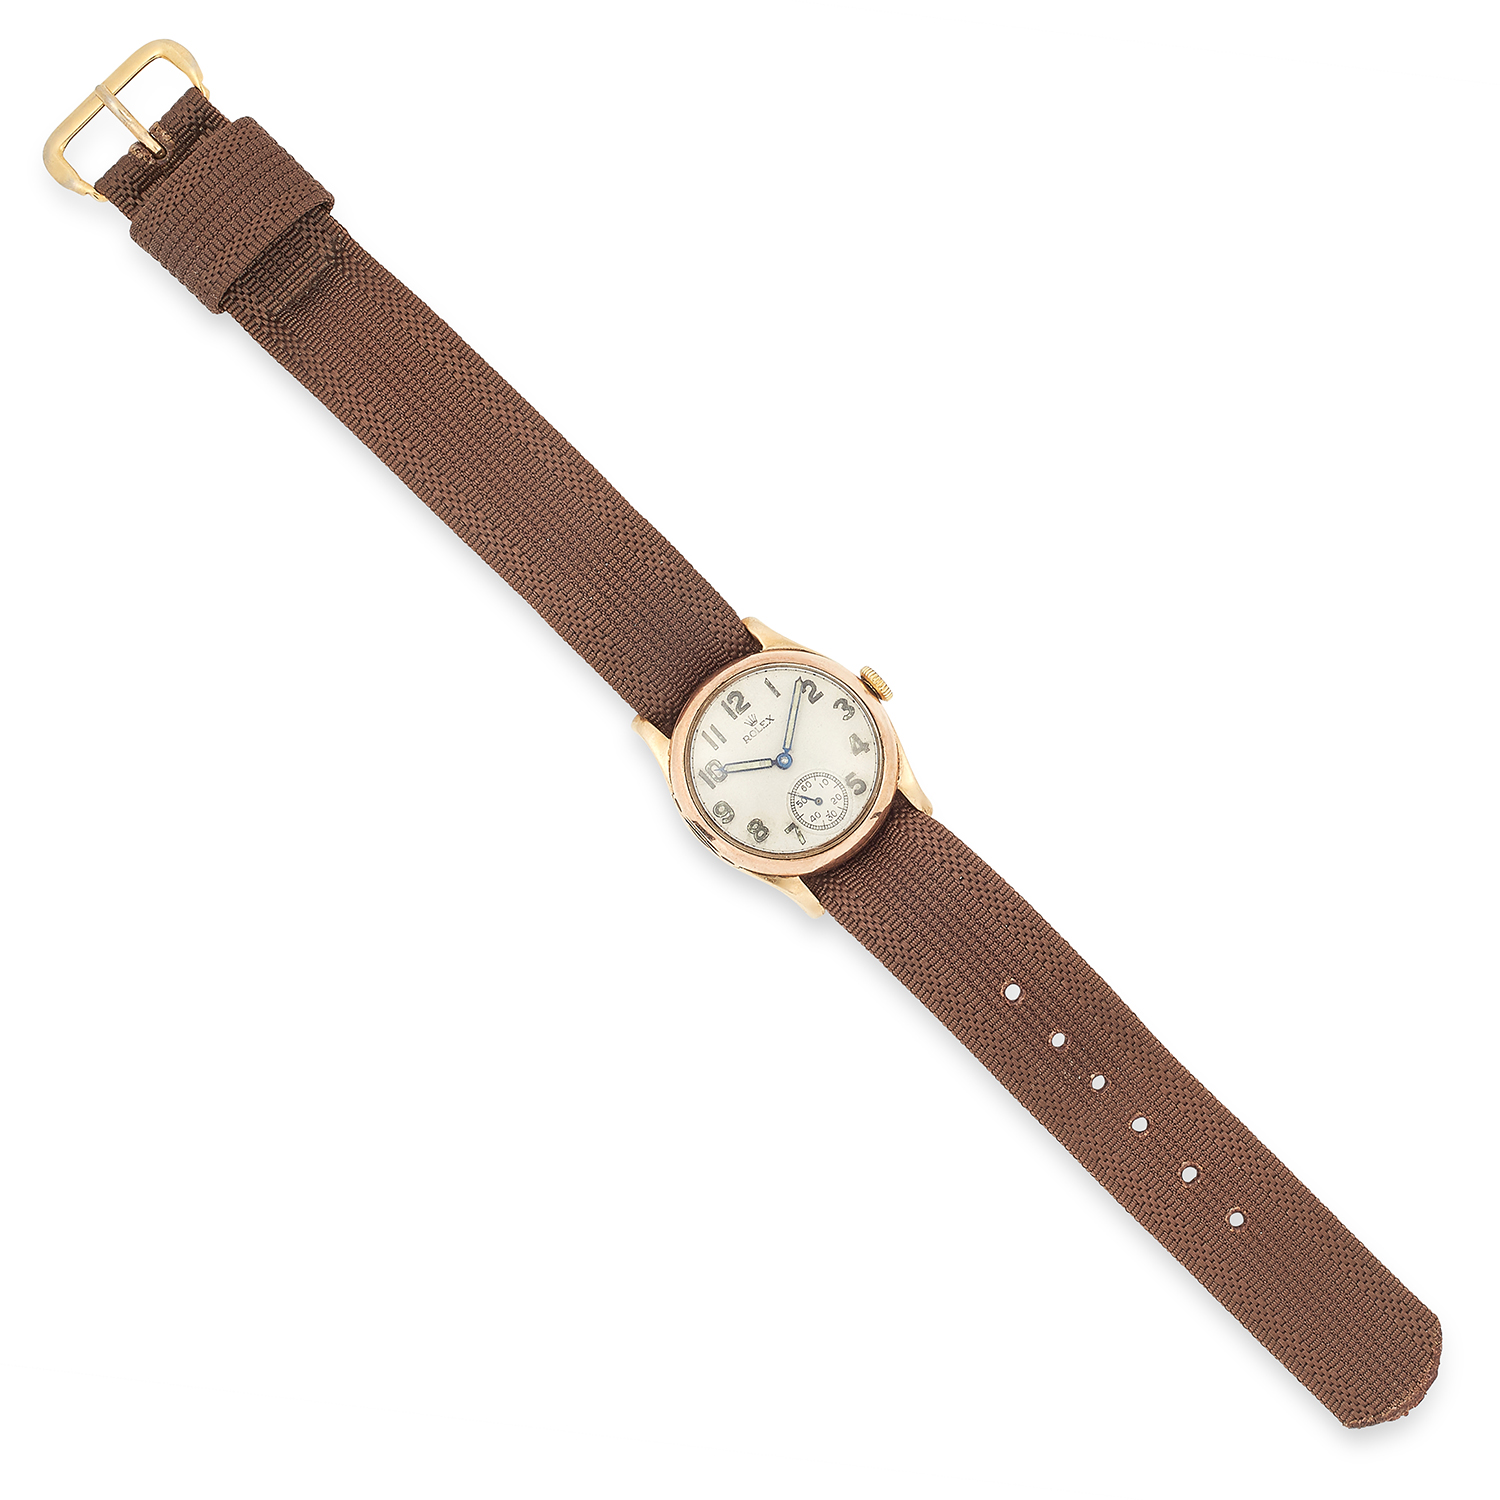 Los 230 - WRISTWATCH, ROLEX with a gold bezel and brown fabric strap, 22.5cm, 22.7g.